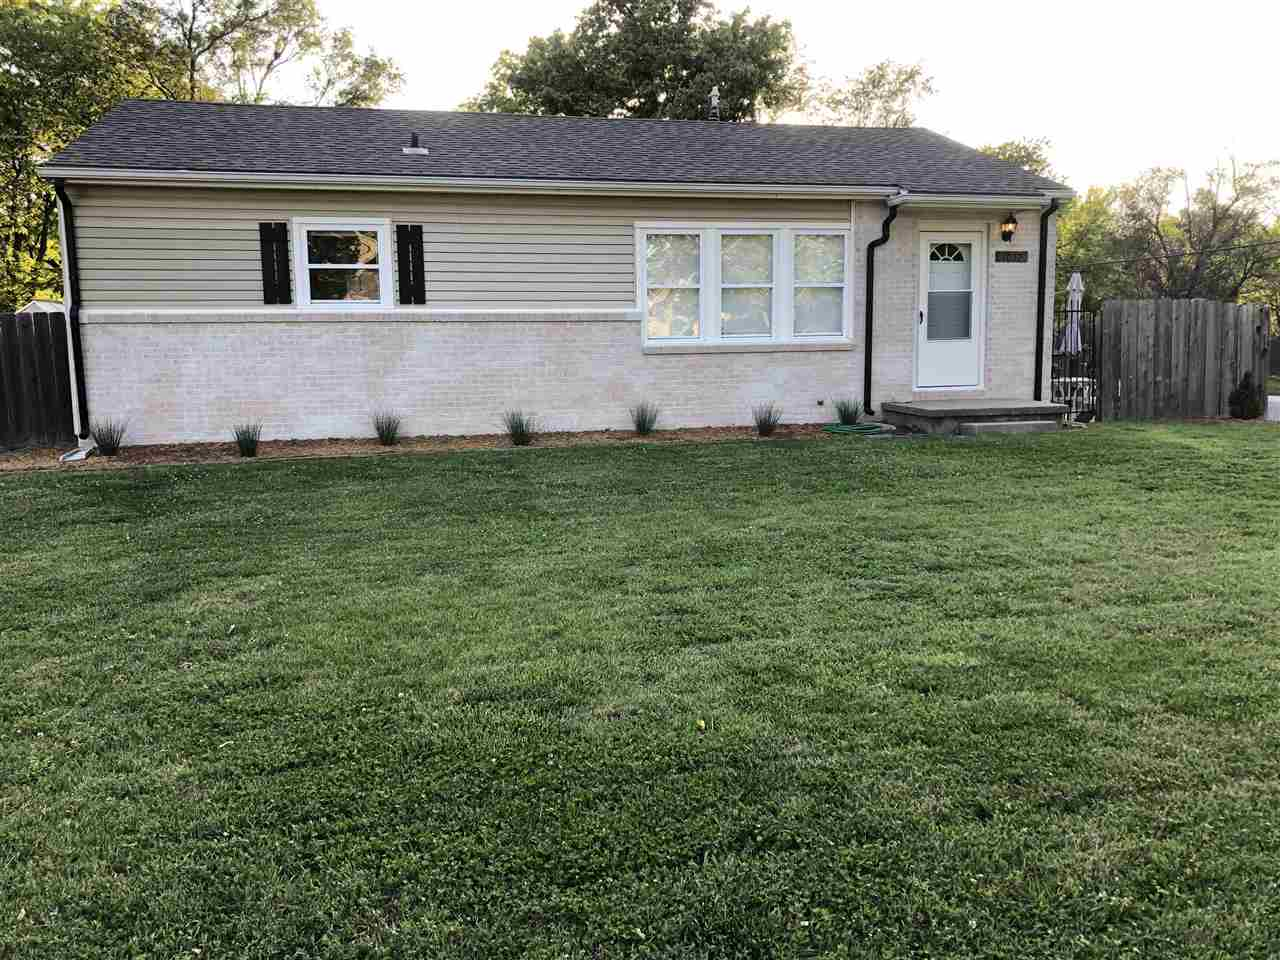 Beautiful Completely updated 3 bedroom 1 bath home on corner lot in desirable Derby neighborhood.  C